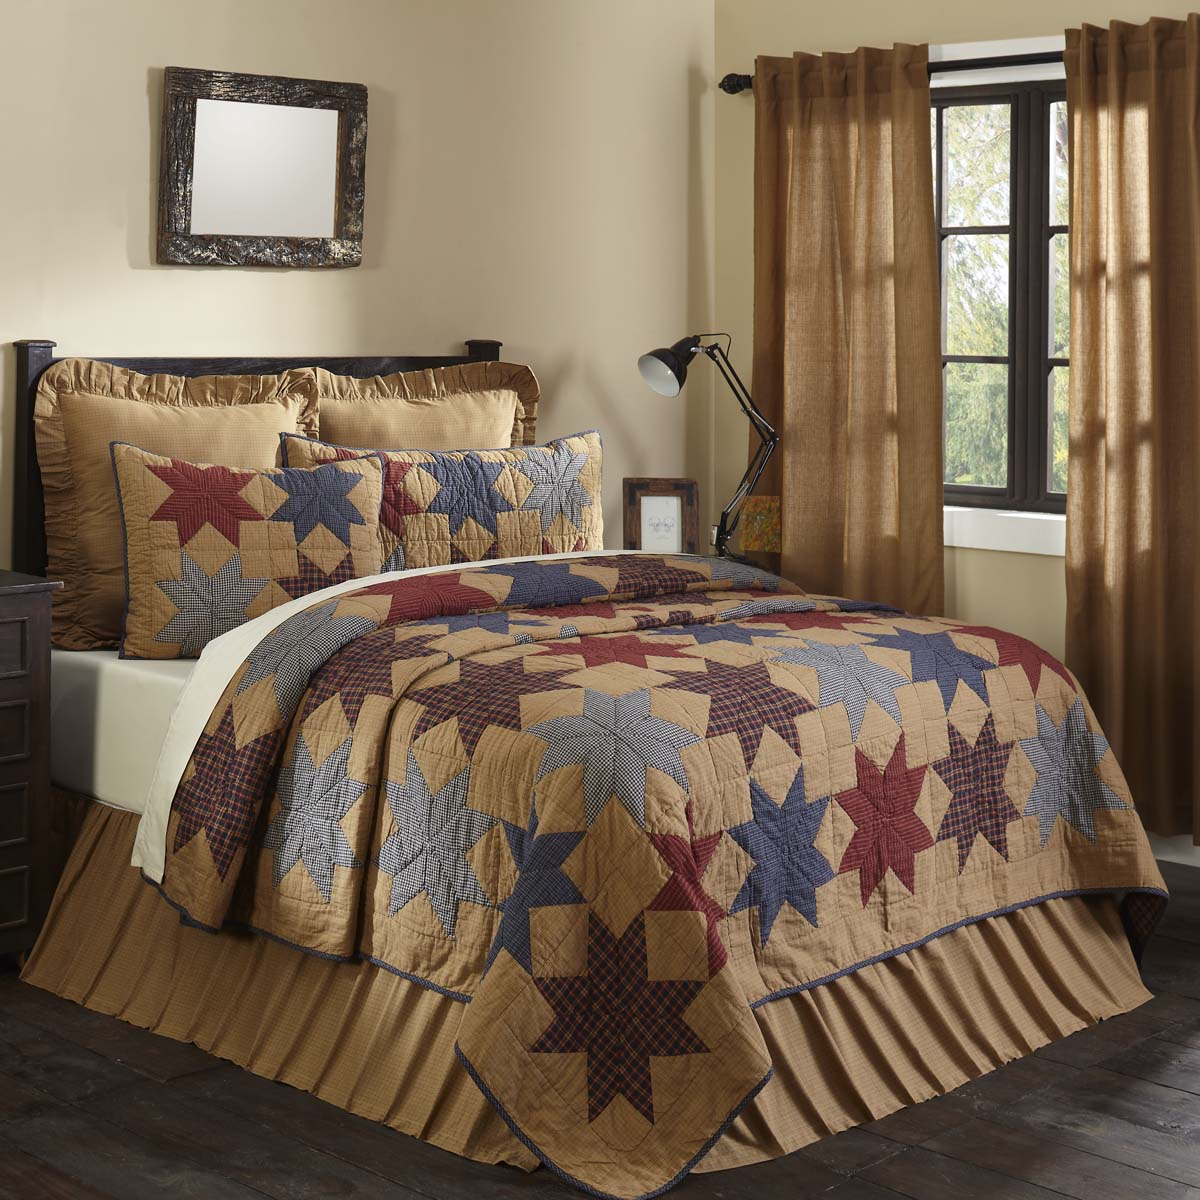 Kindred Star Luxury King Quilt 120Wx105L